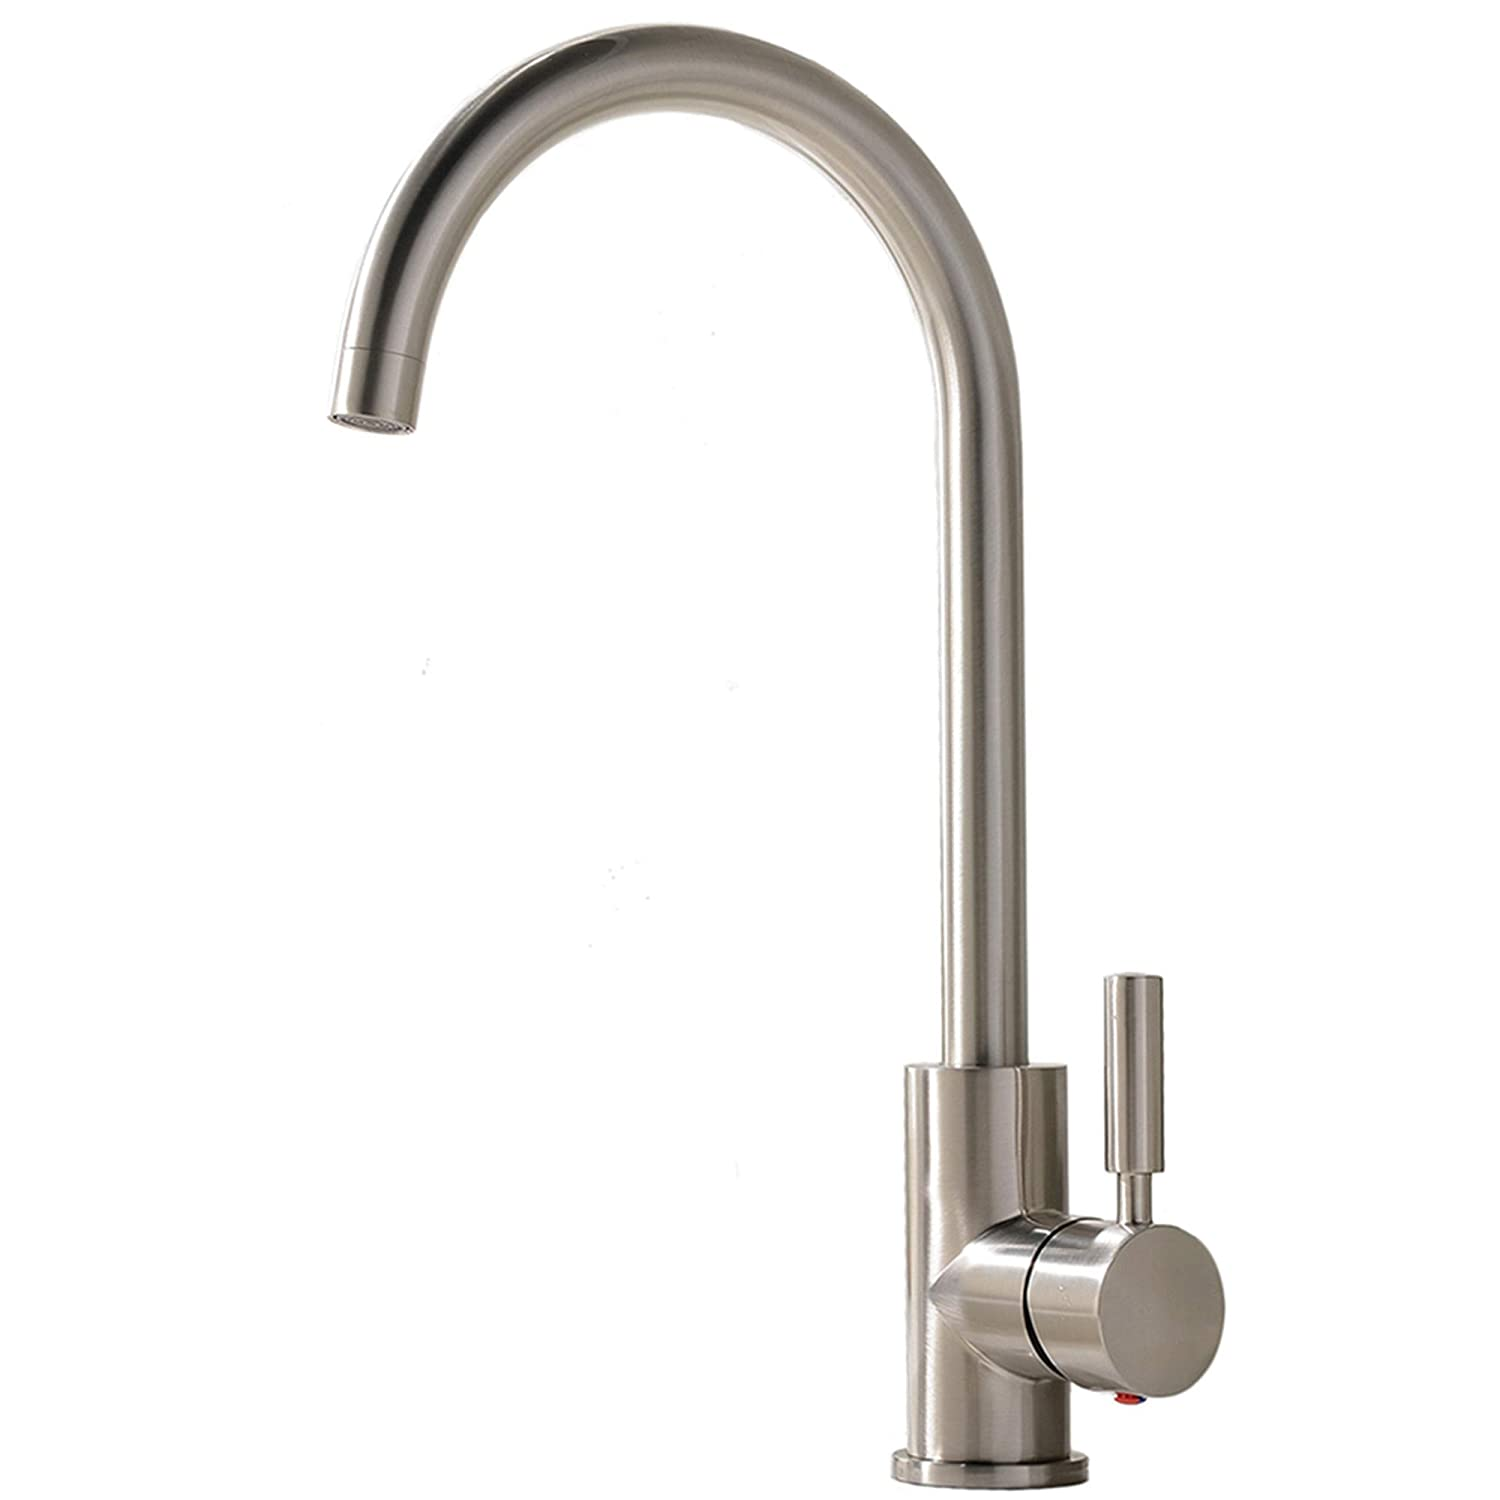 Amazing Comllen Best Commercial Brushed Nickel Stainless Steel Single Handle Kitchen Sink Faucet Hot And Cold Single Lever Kitchen Faucets Interior Design Ideas Gentotthenellocom